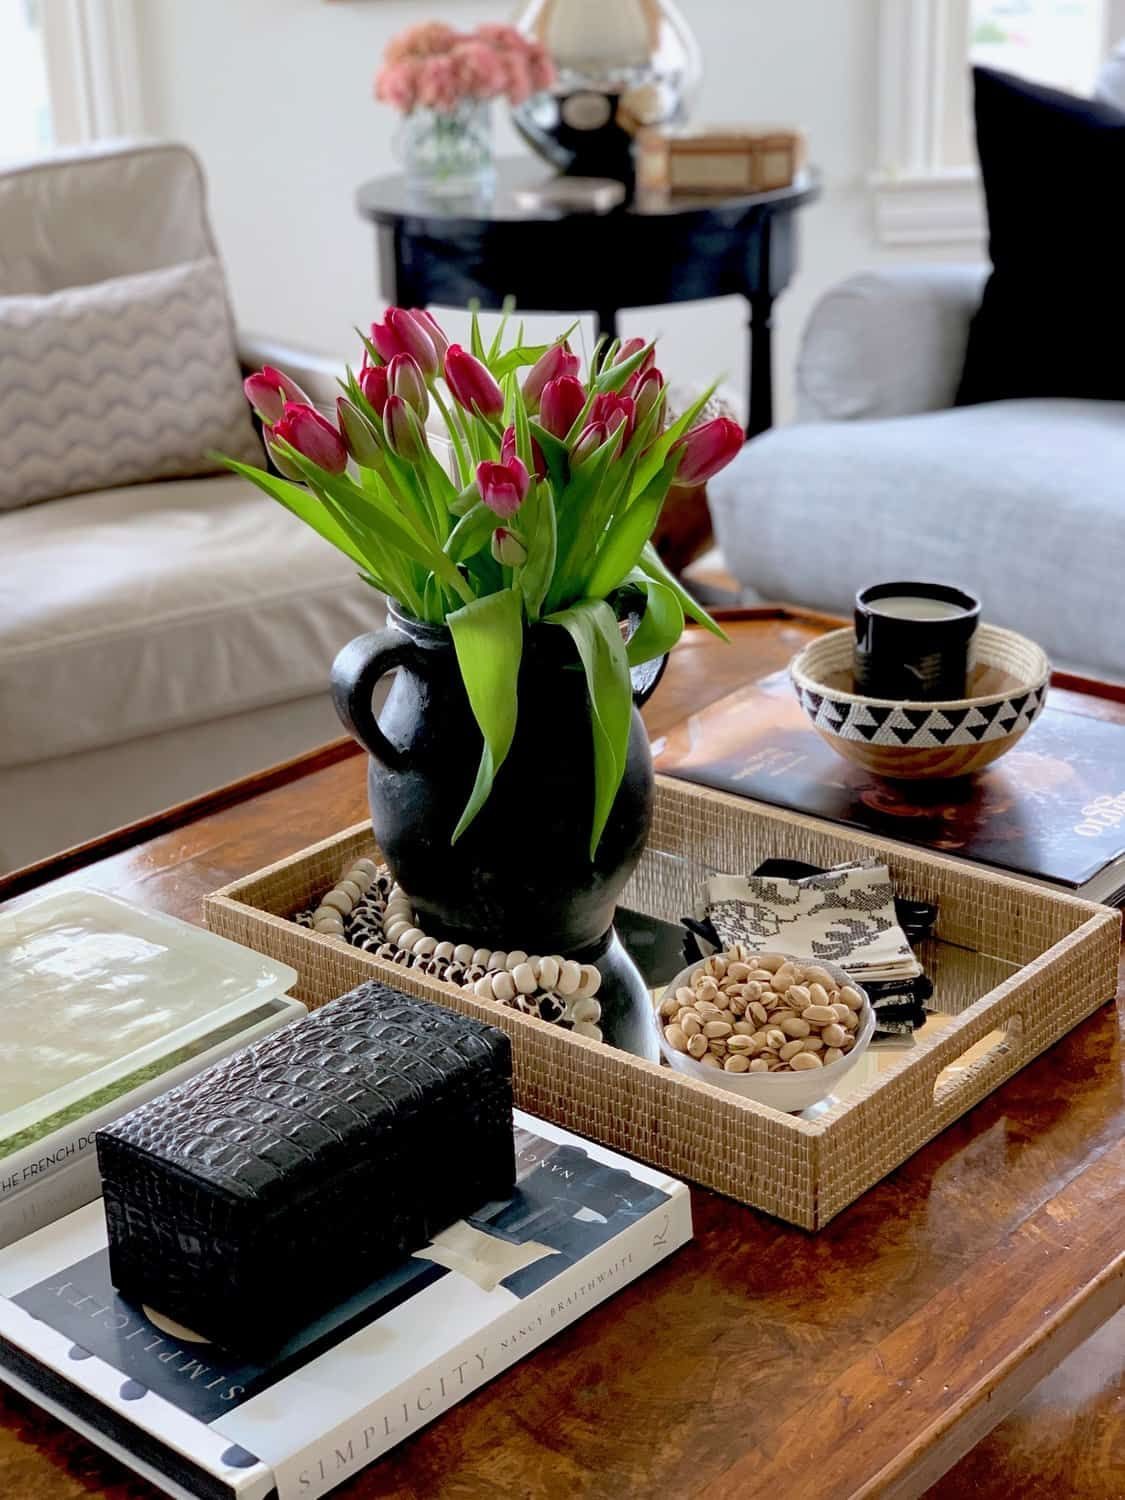 Five Basic Steps To Style Your Coffee Table Decorating Coffee Tables Coffee Table Decor Living Room Table Decor Living Room